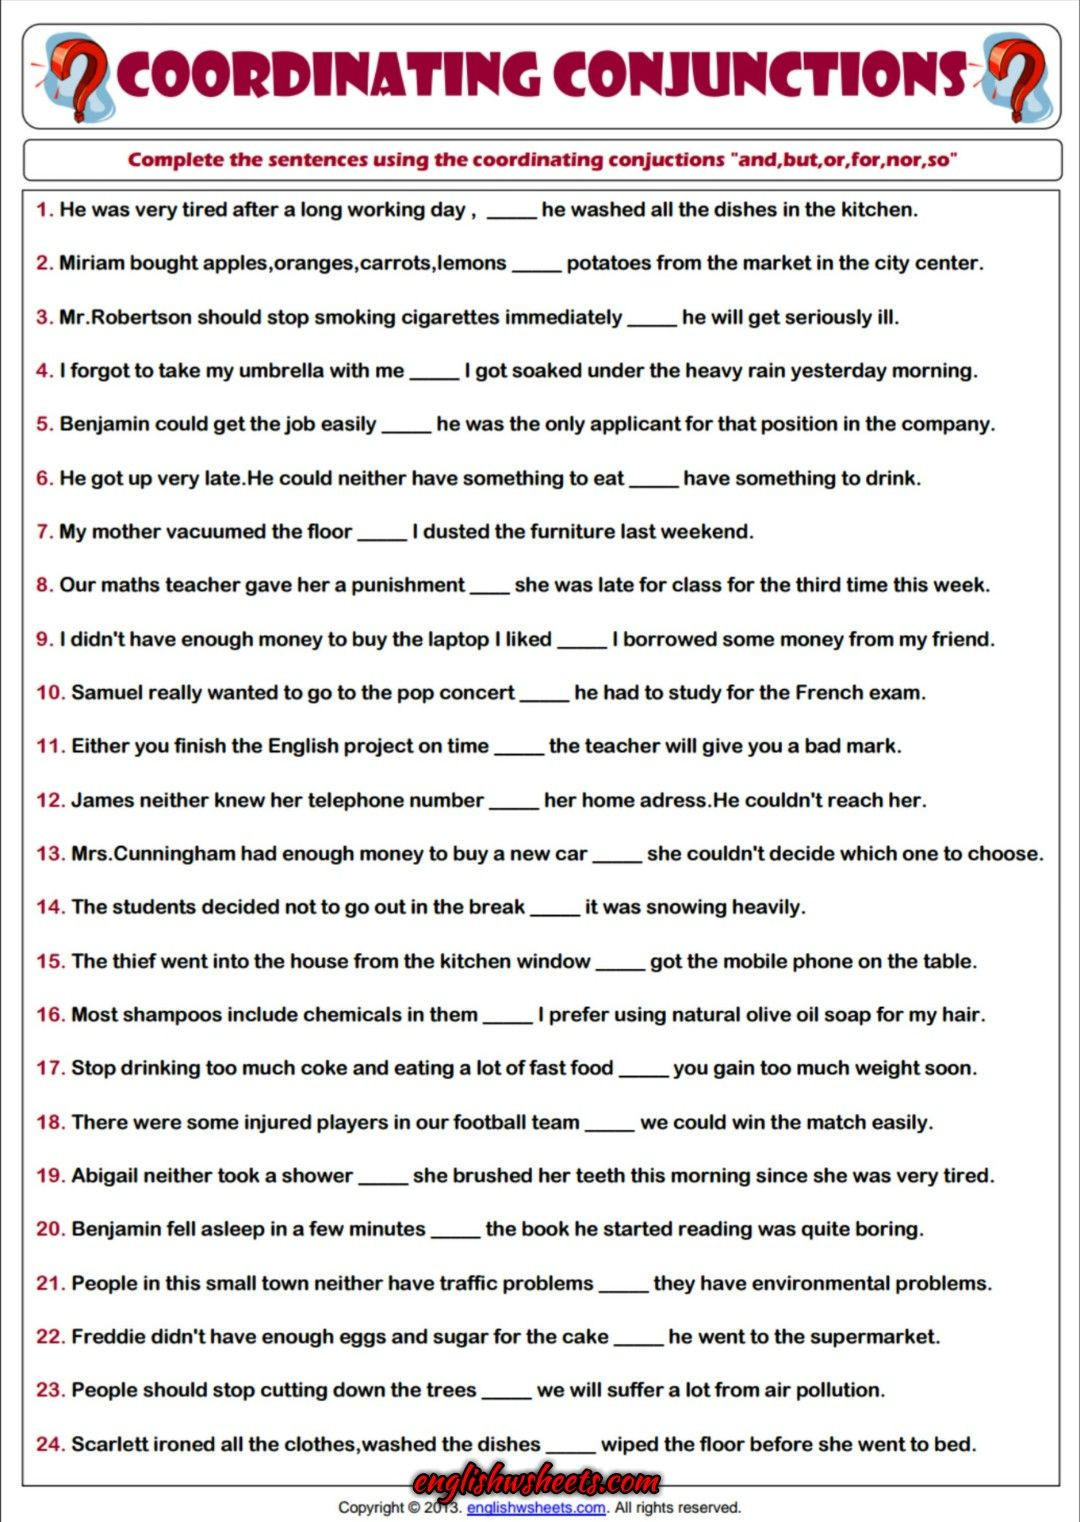 Grammar Worksheets for Middle School Coordinating Conjunctions Esl Printable Grammar Worksheet